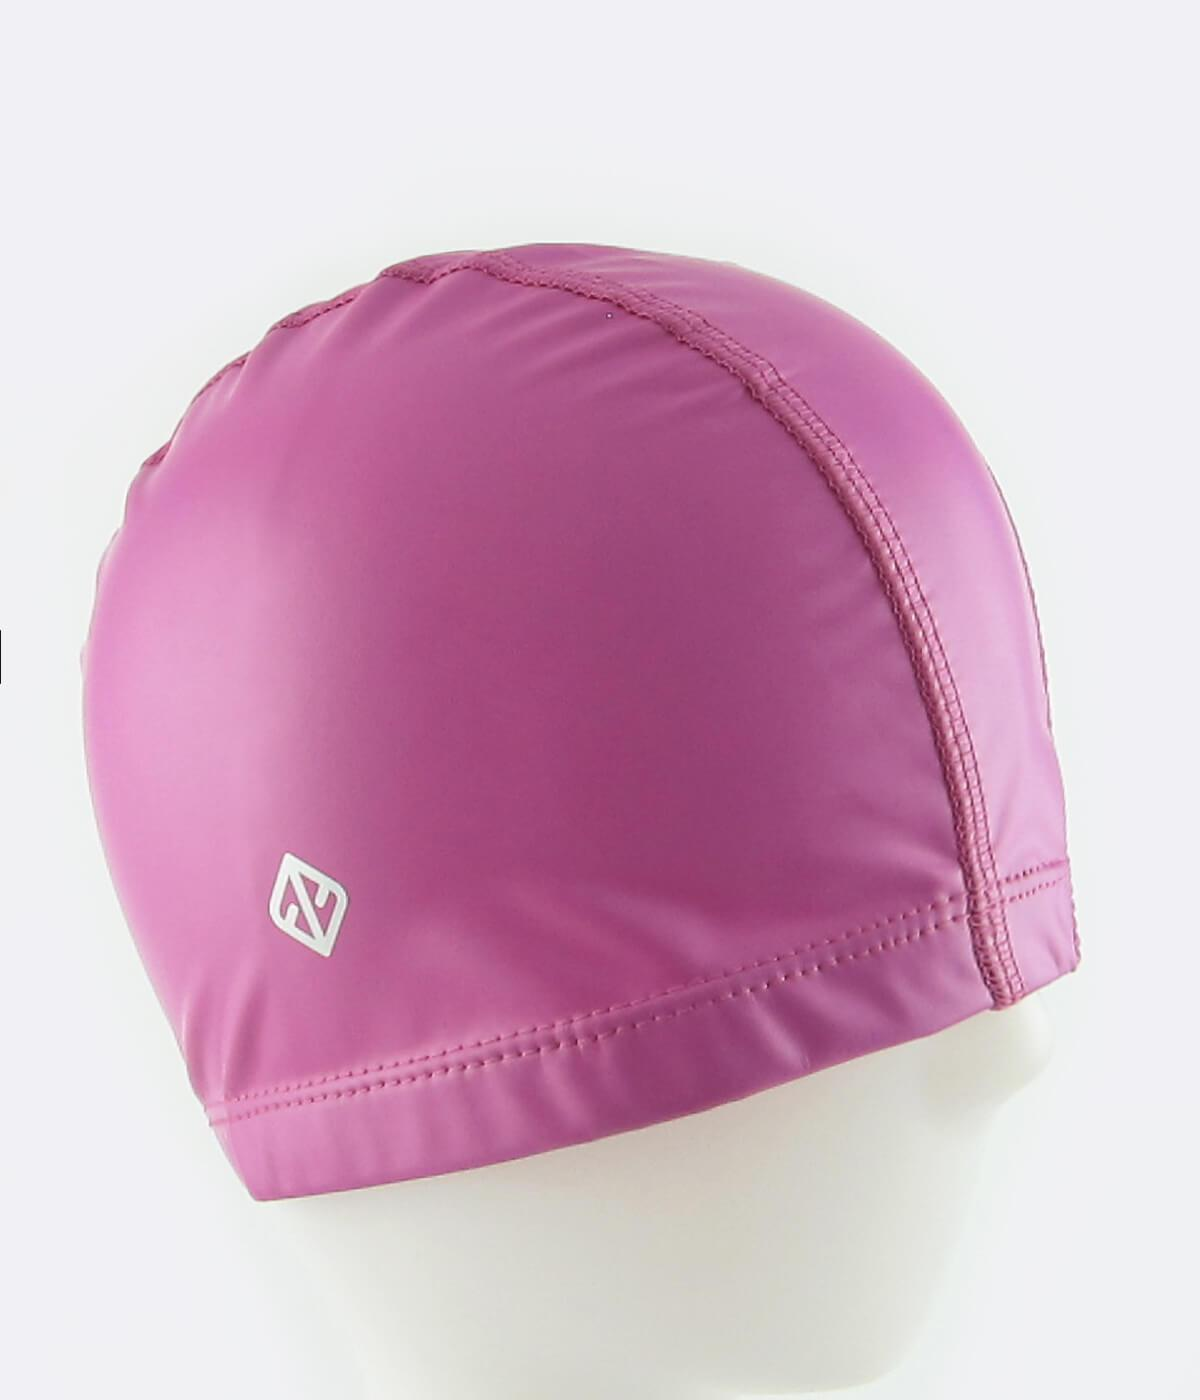 FUNFIT PU Coated Swimming Cap in Phlox Rose